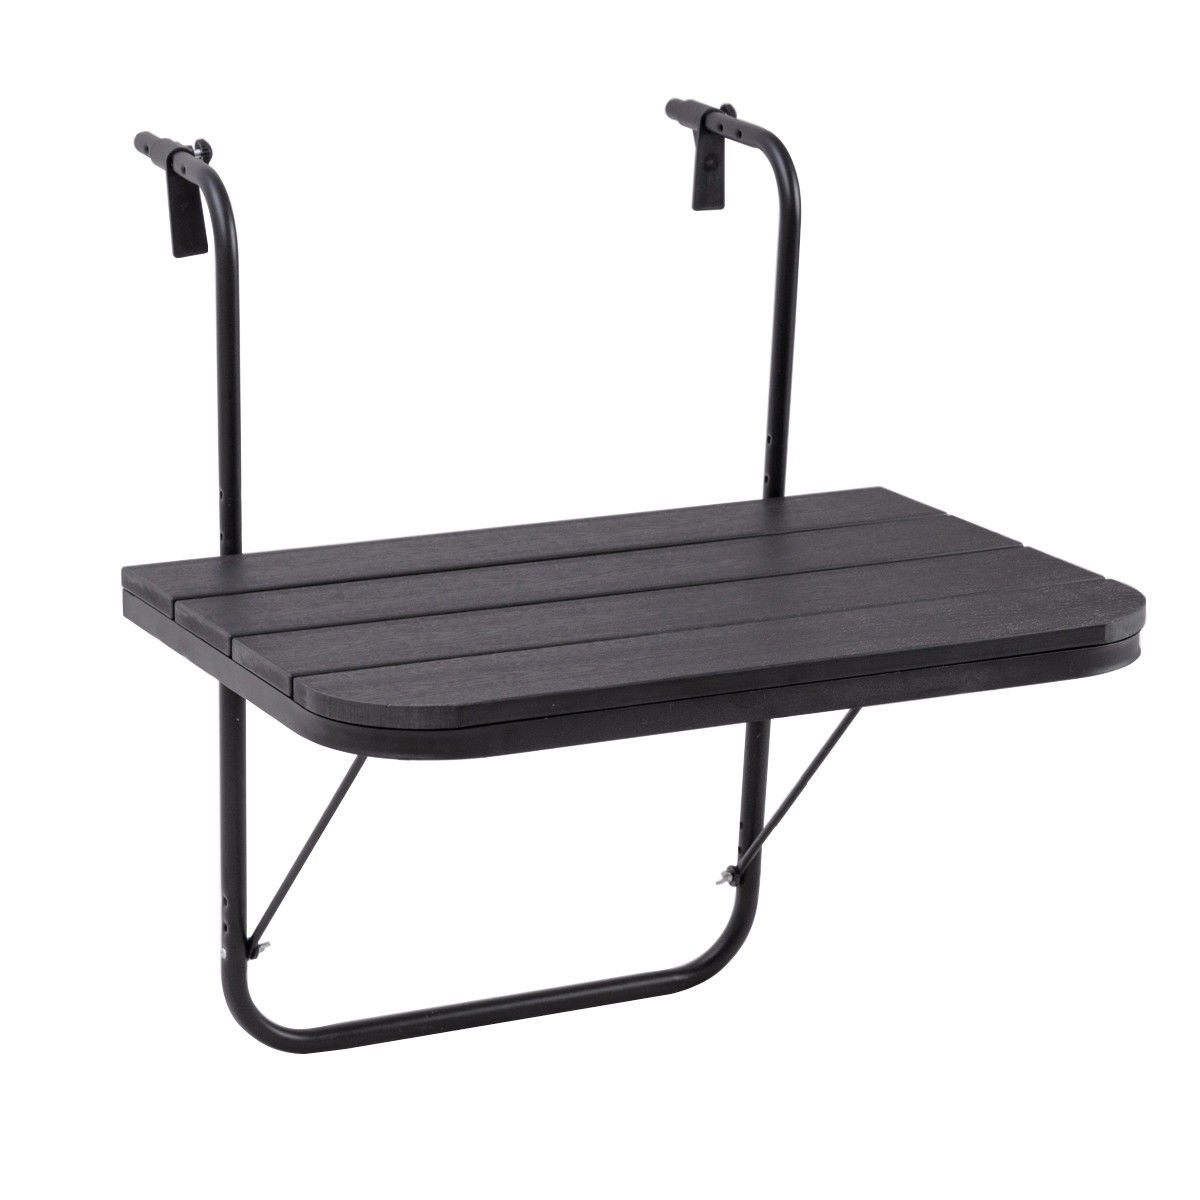 Black Balcony Folding Table Adjustable Serving Tray w/ 4 Hanging Hooks